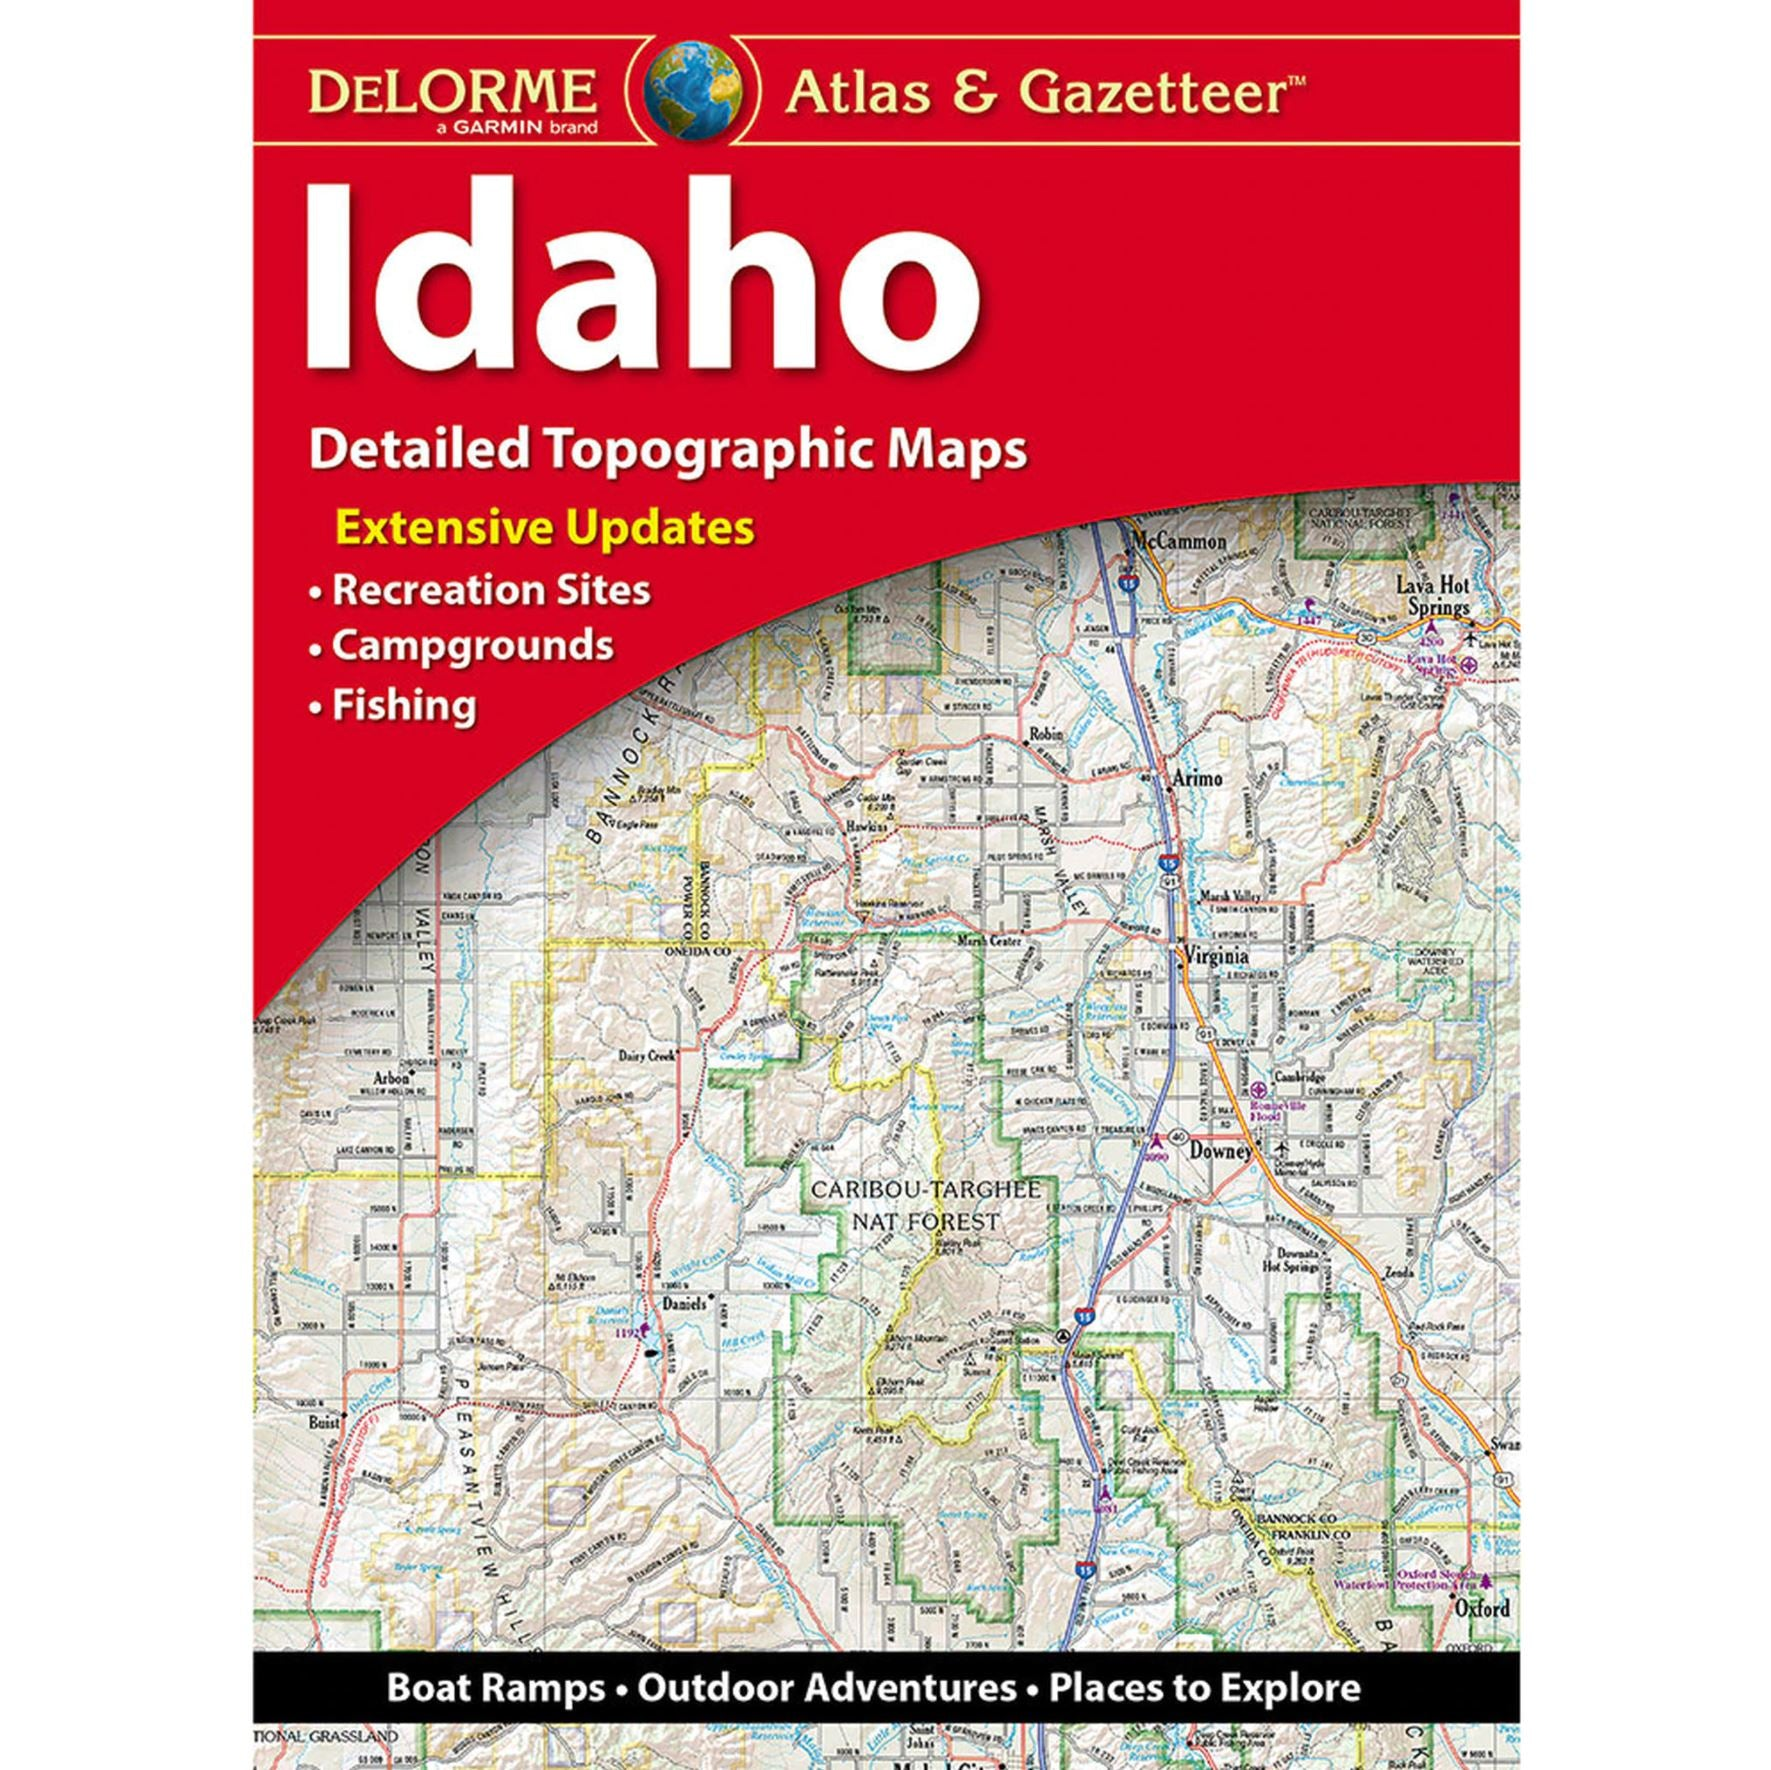 the cover of the idaho delorme road atlas